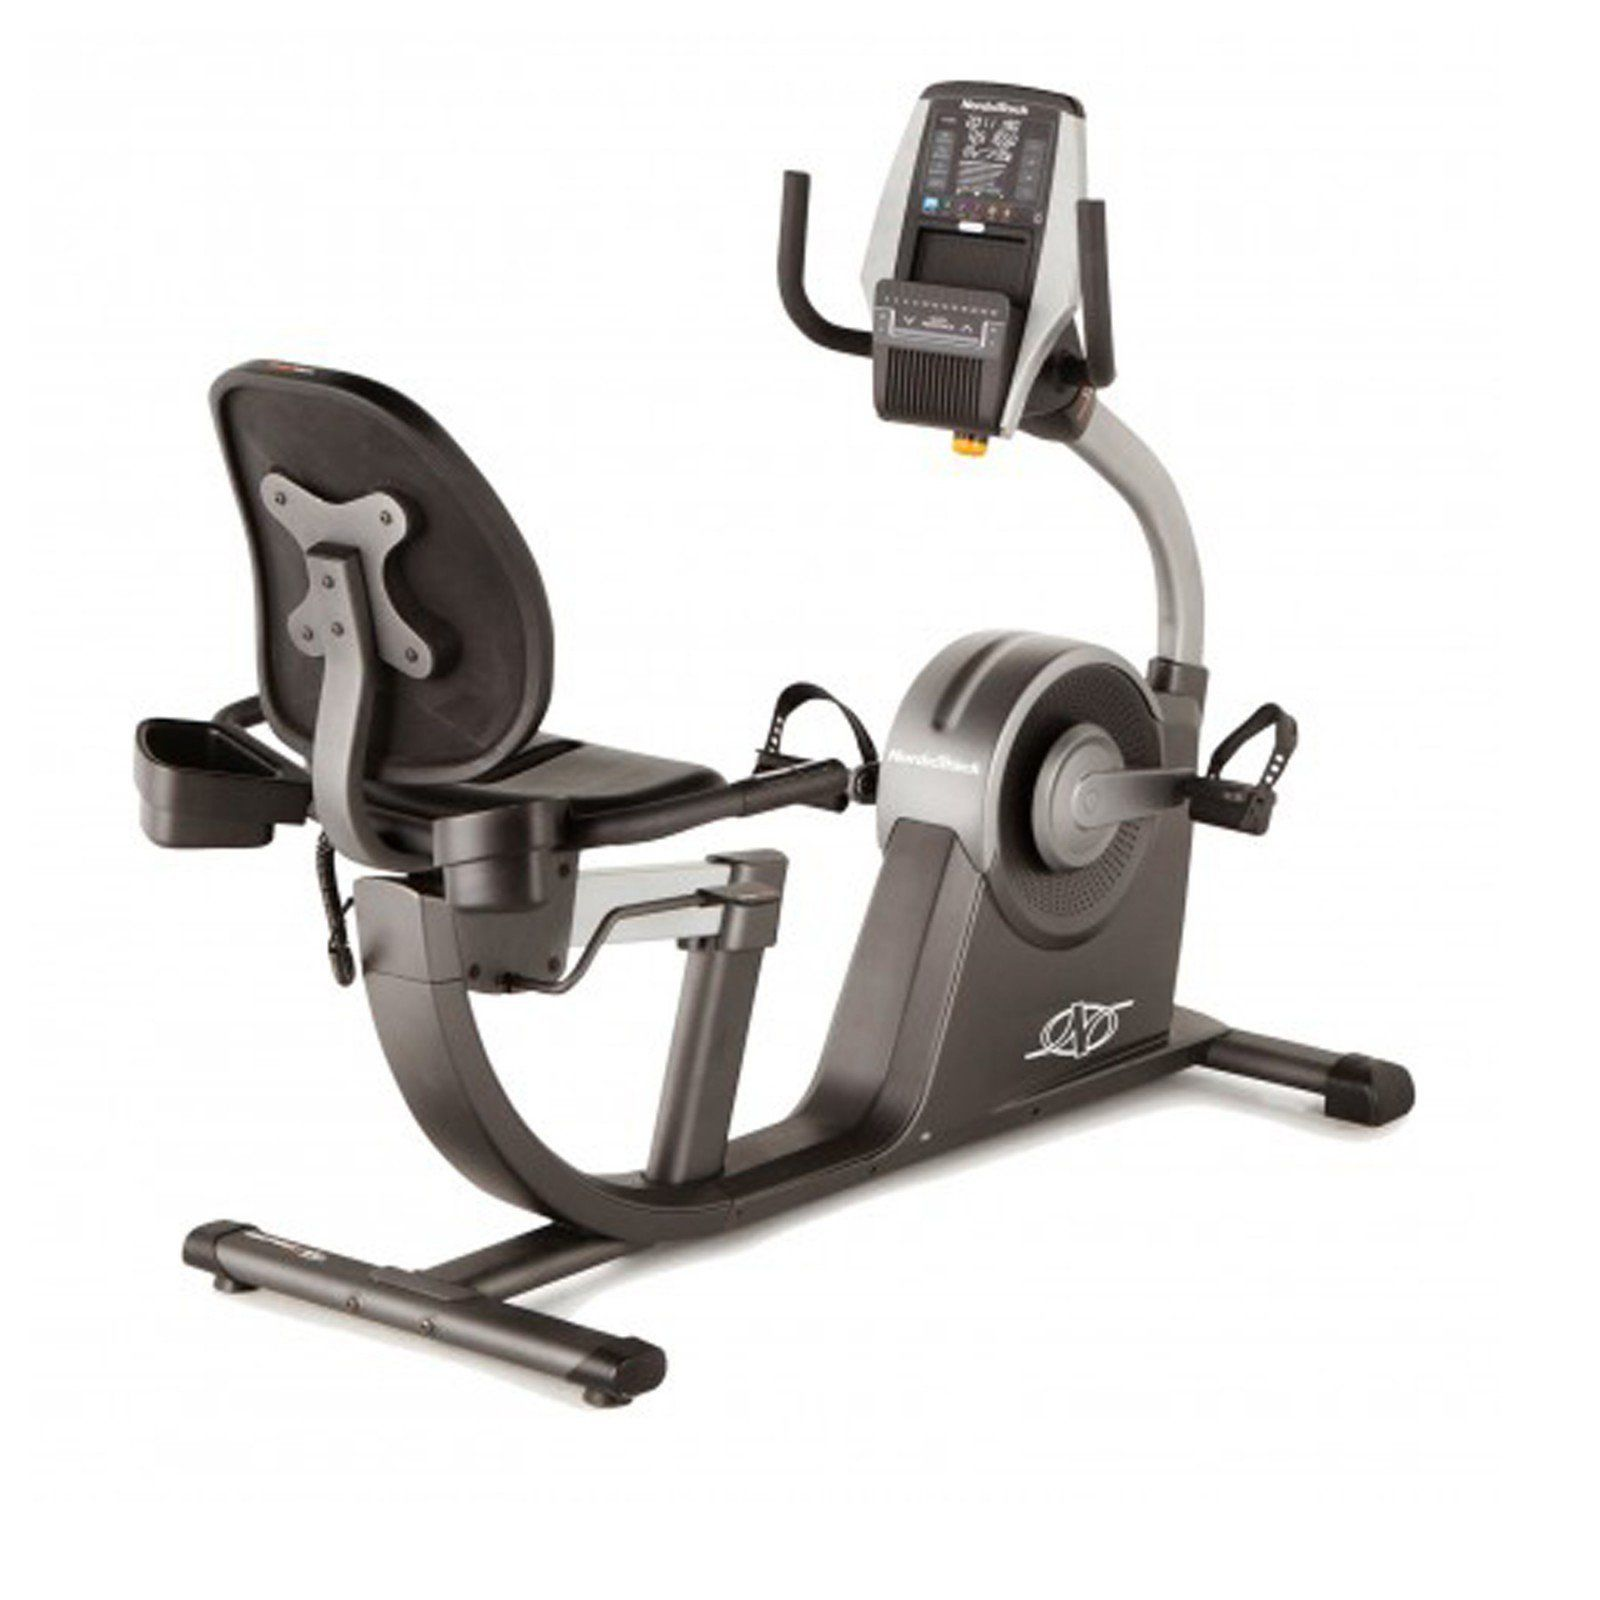 Nordictrack R105 Recumbent Exercise Bike Recumbent Exercise Bikes Exercise Bikes Recumbent Bike Workout Biking Workout Cycling Workout